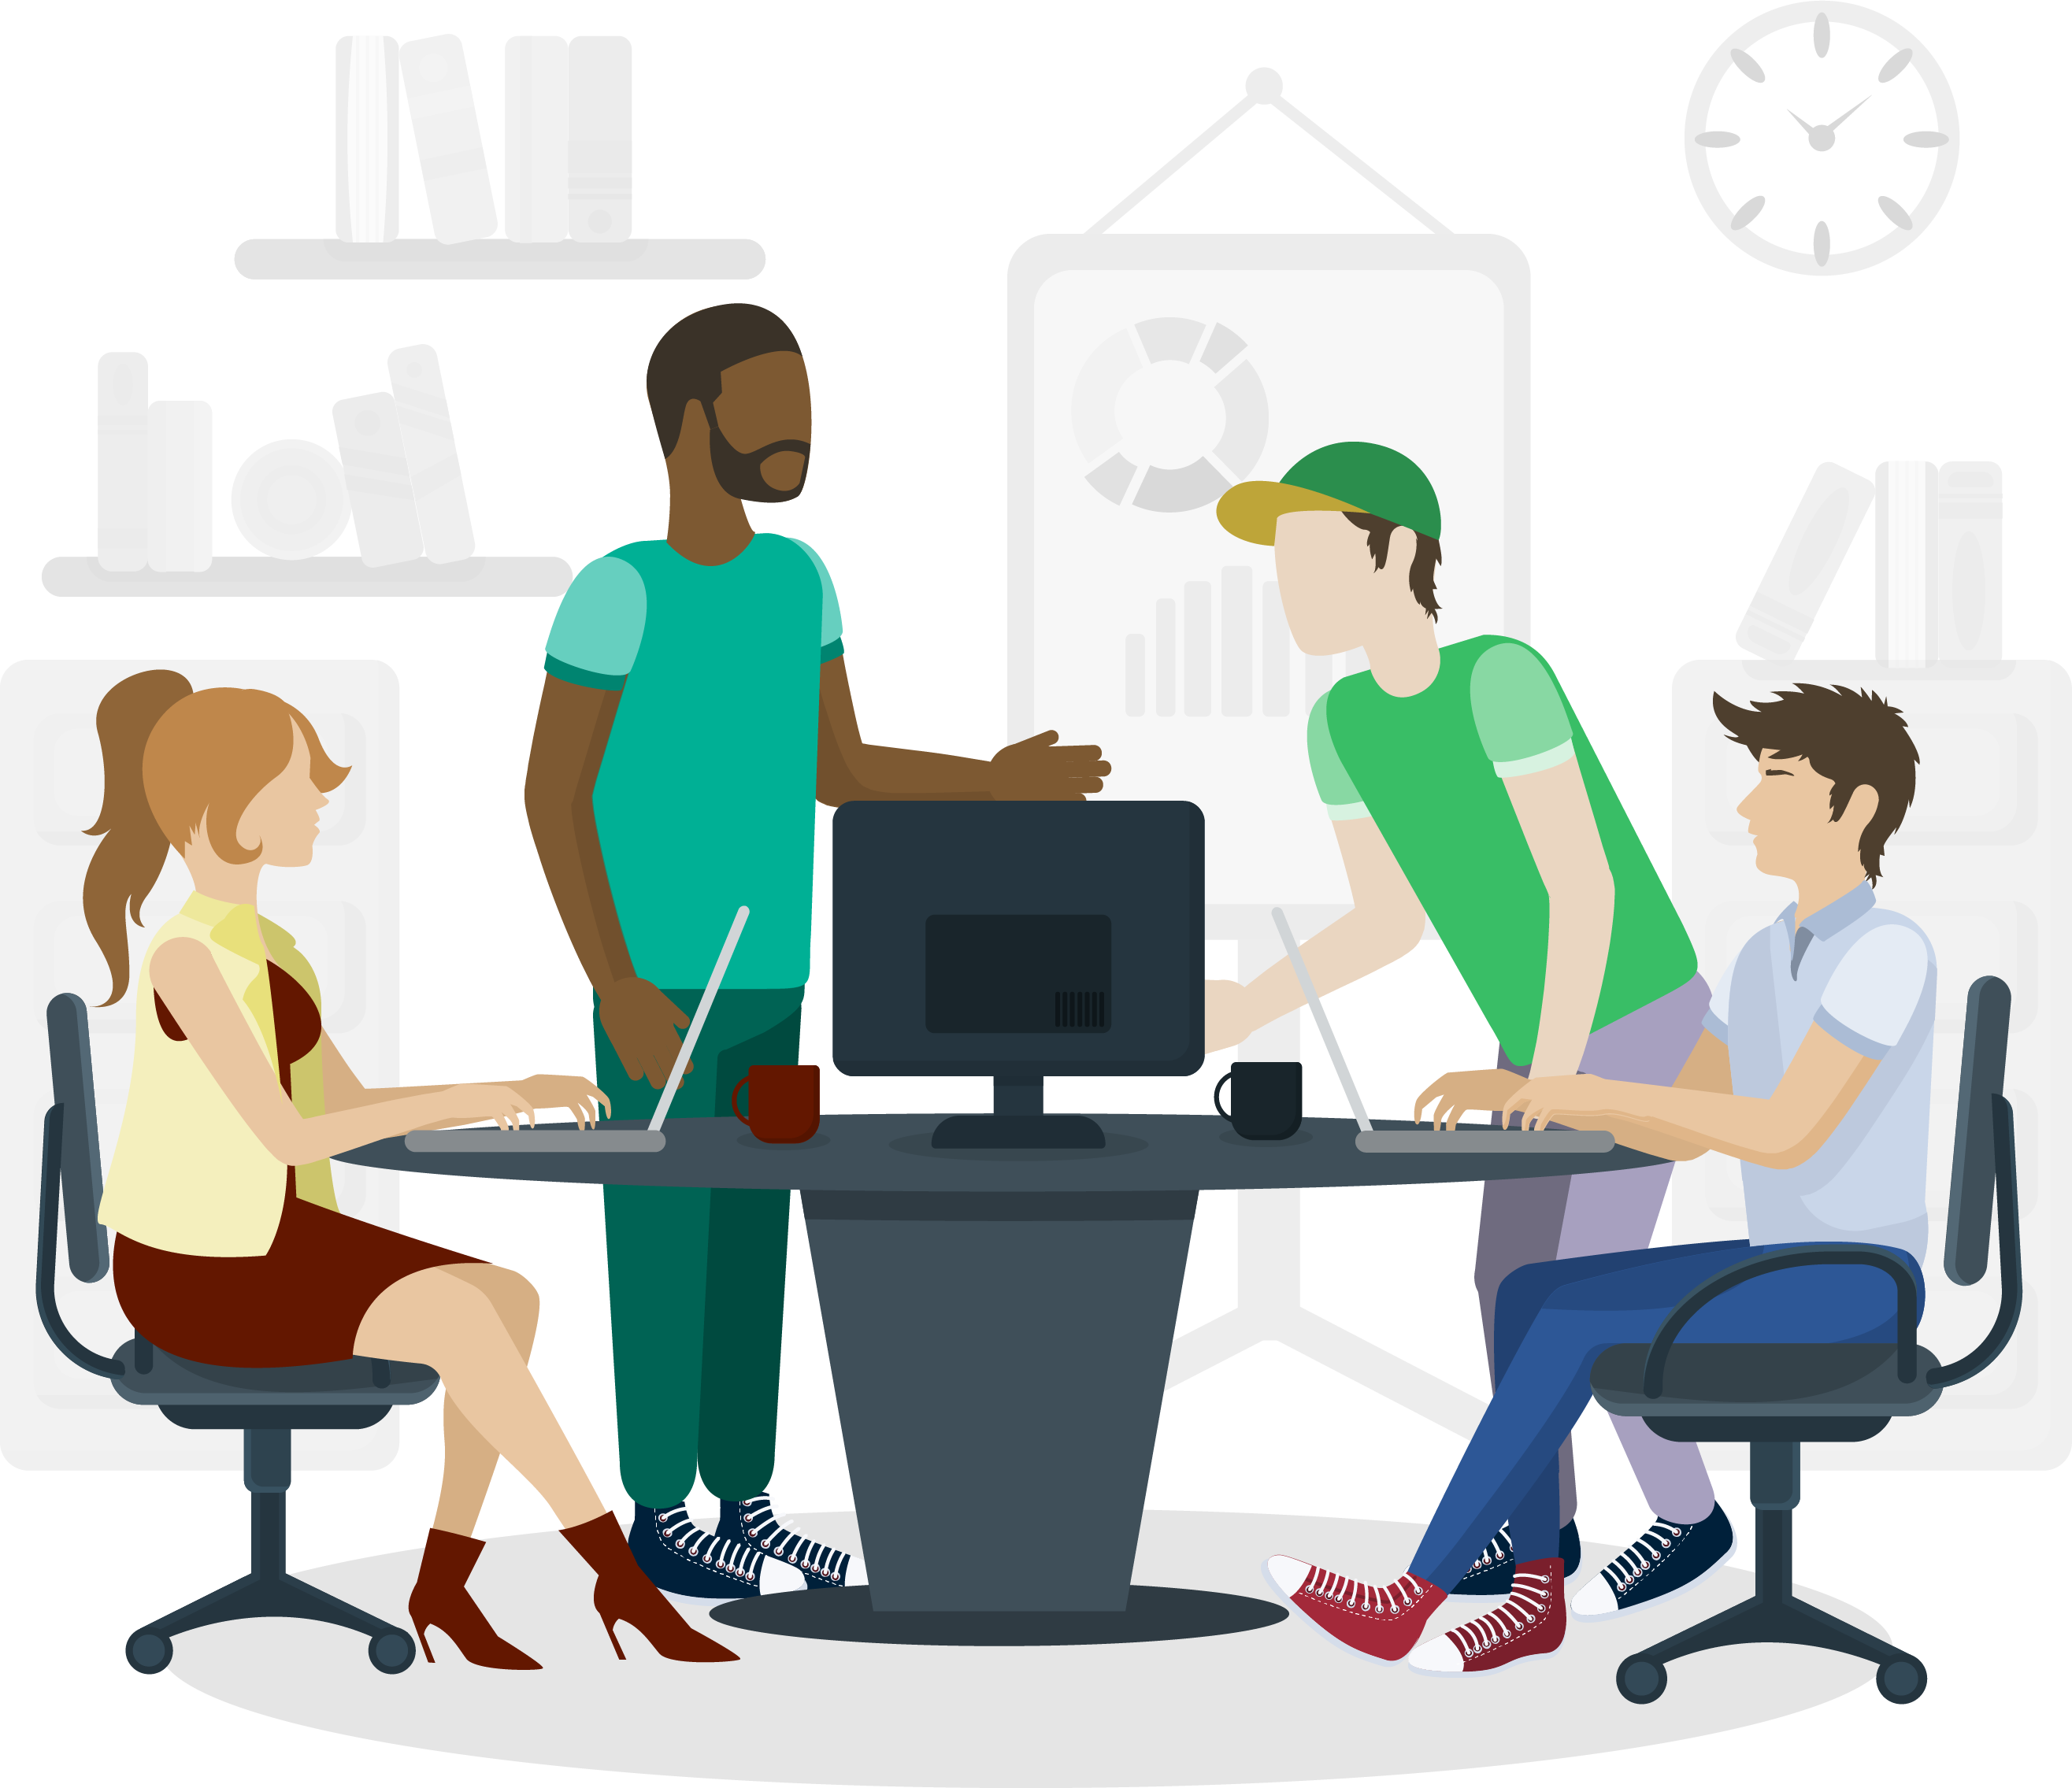 Illustration of Office workers discussing